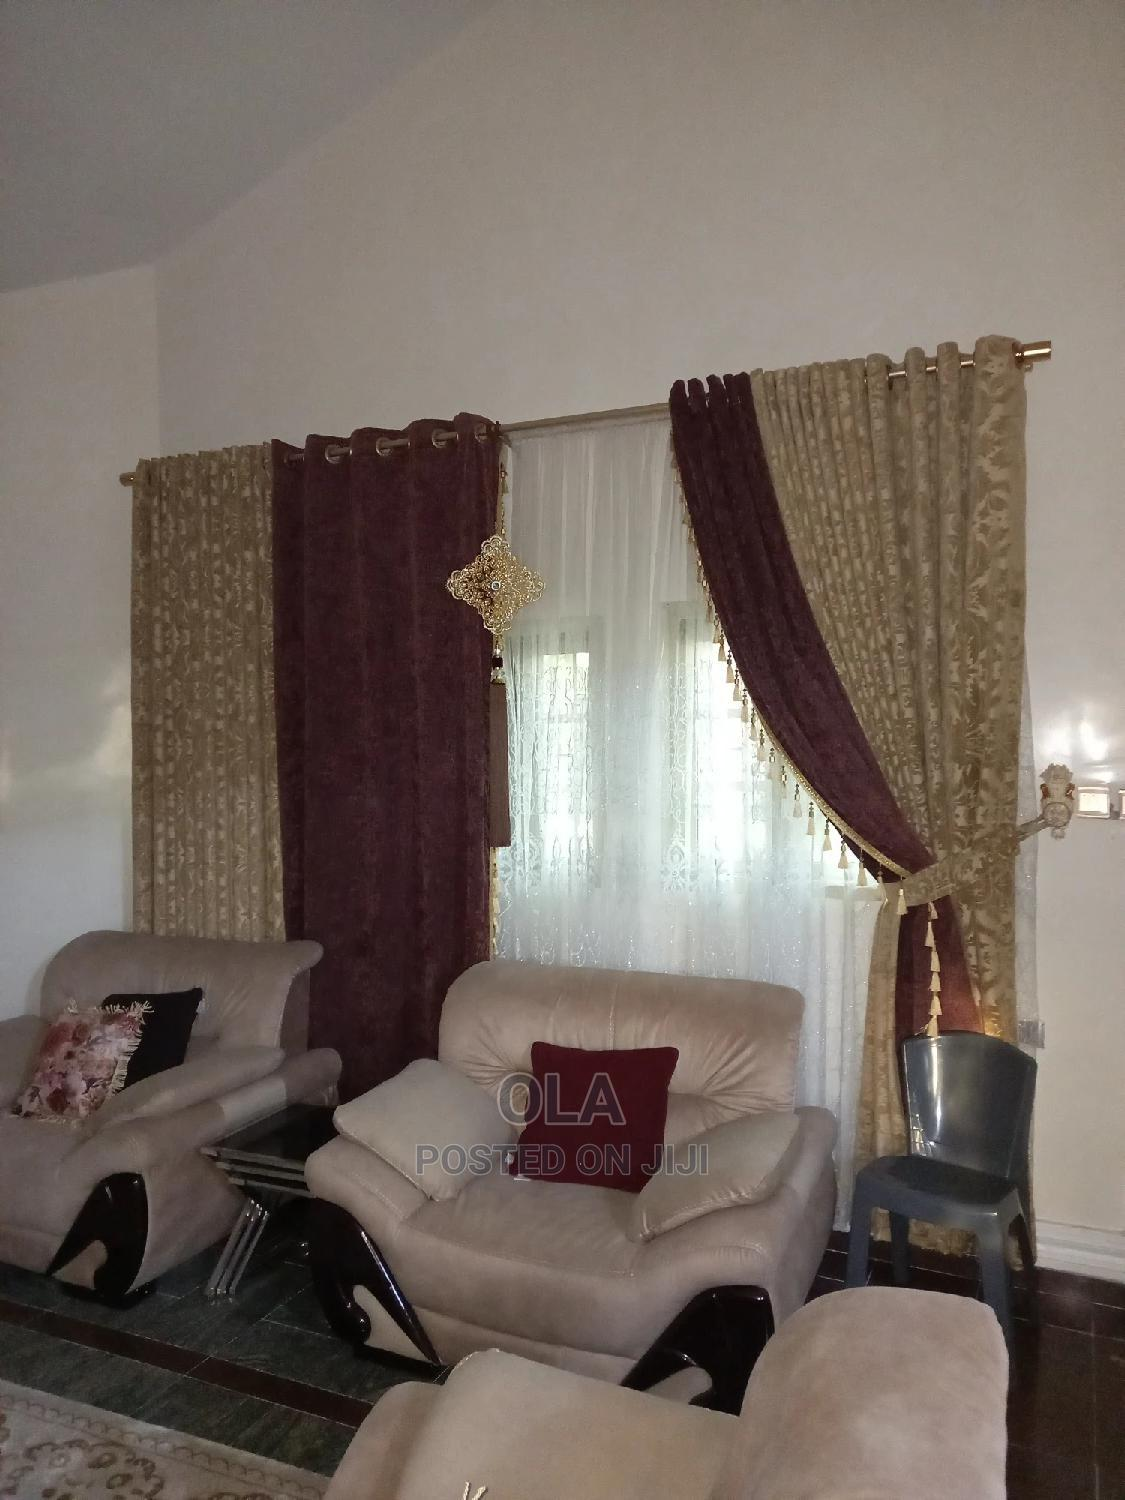 Window Blinds, Curtains Wallpapers   Home Accessories for sale in Warri, Delta State, Nigeria